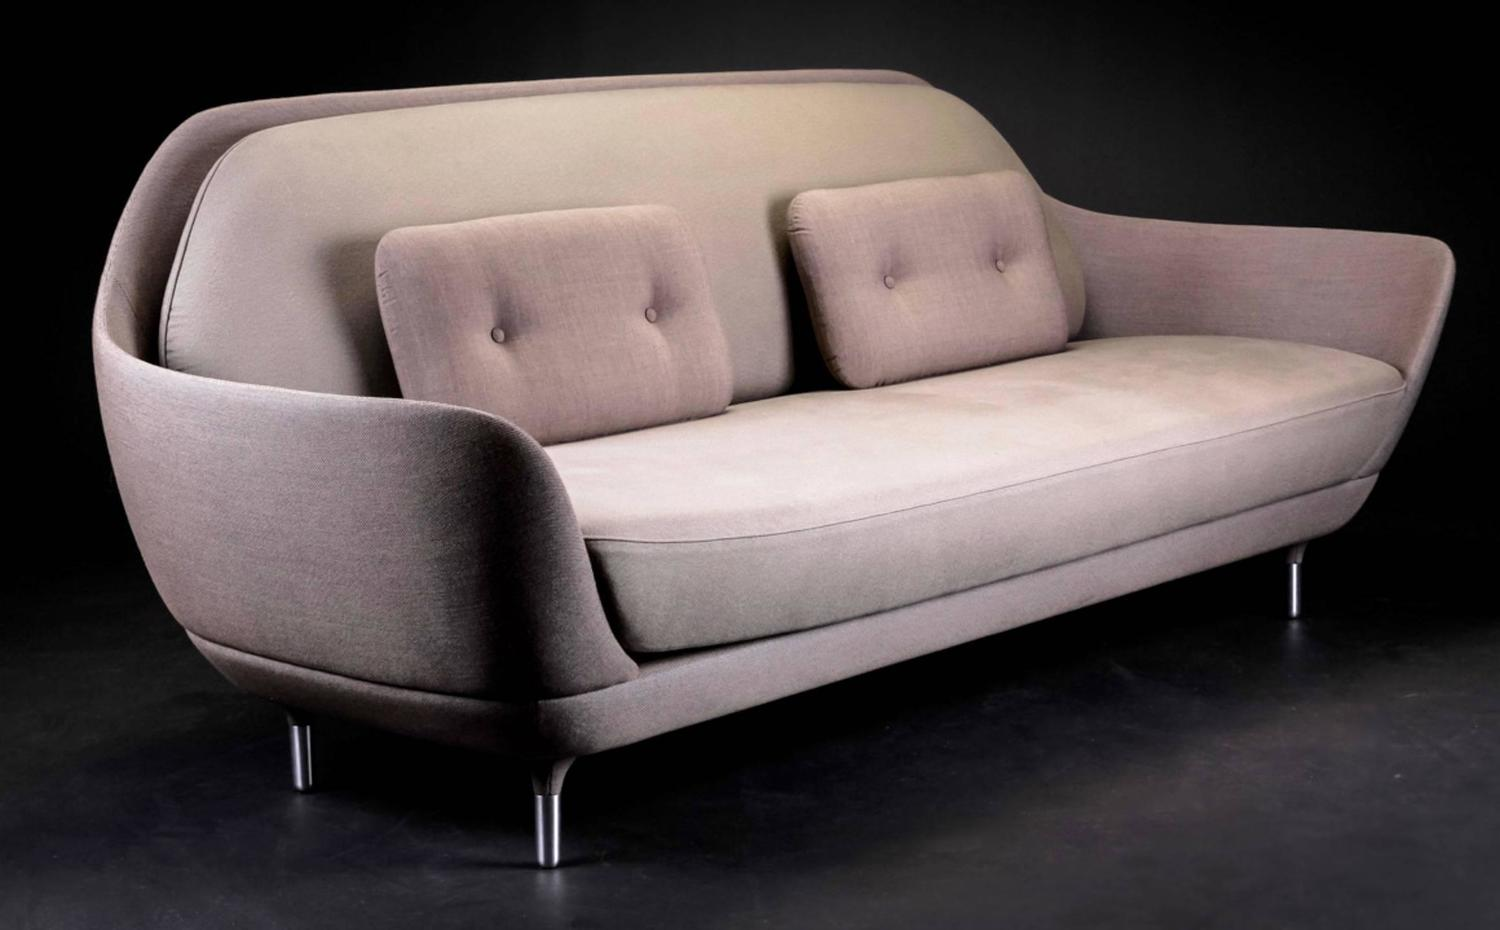 jaime hayon favn three seat sofa manufactured by fritz hansen for sale at 1stdibs. Black Bedroom Furniture Sets. Home Design Ideas